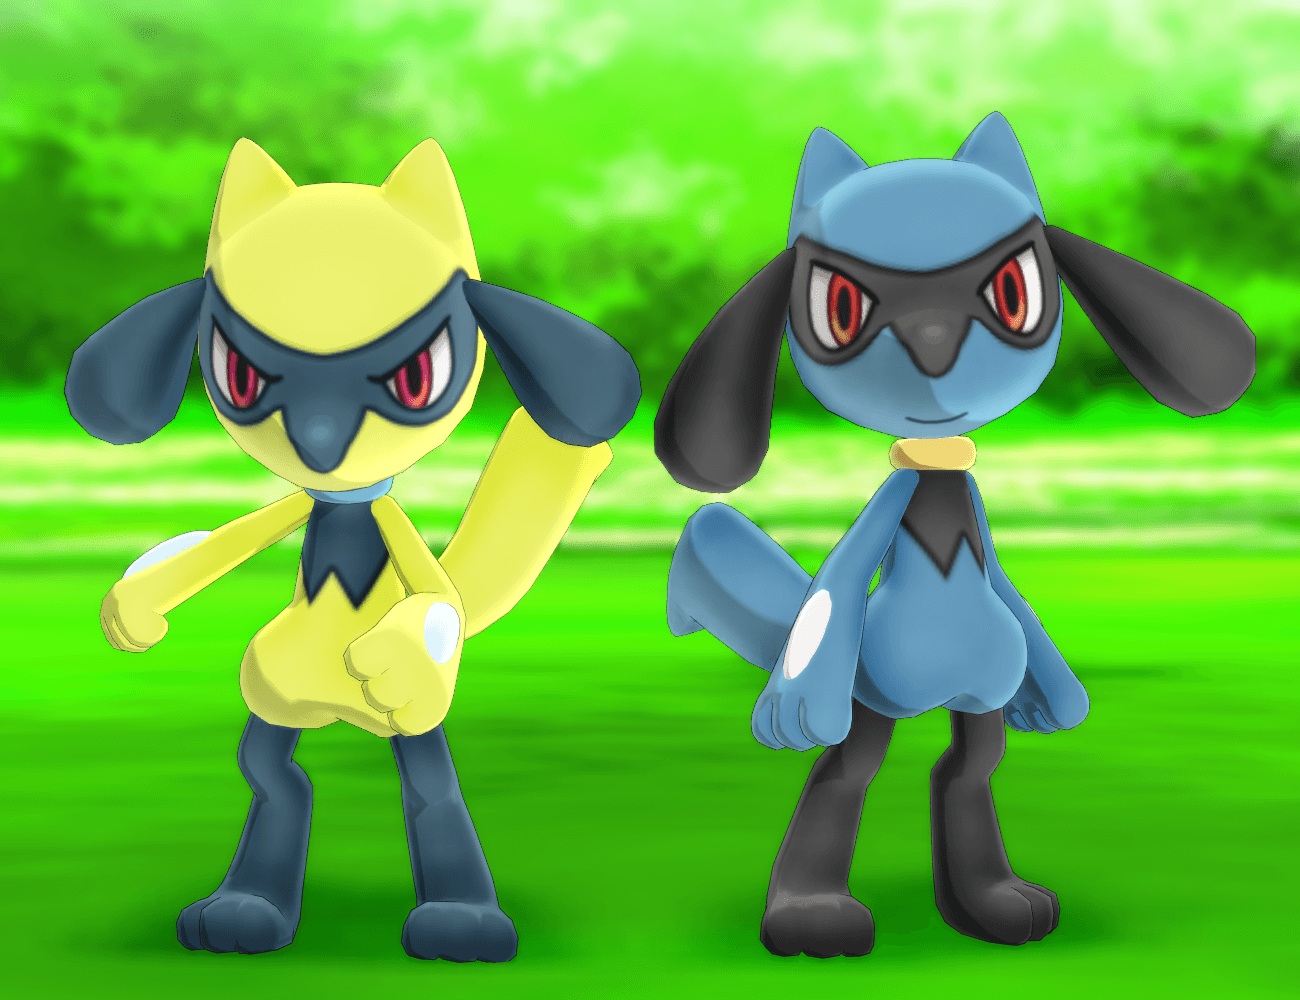 MMD Pokemon - Riolu (XY) DL by MMDSatoshi on DeviantArt